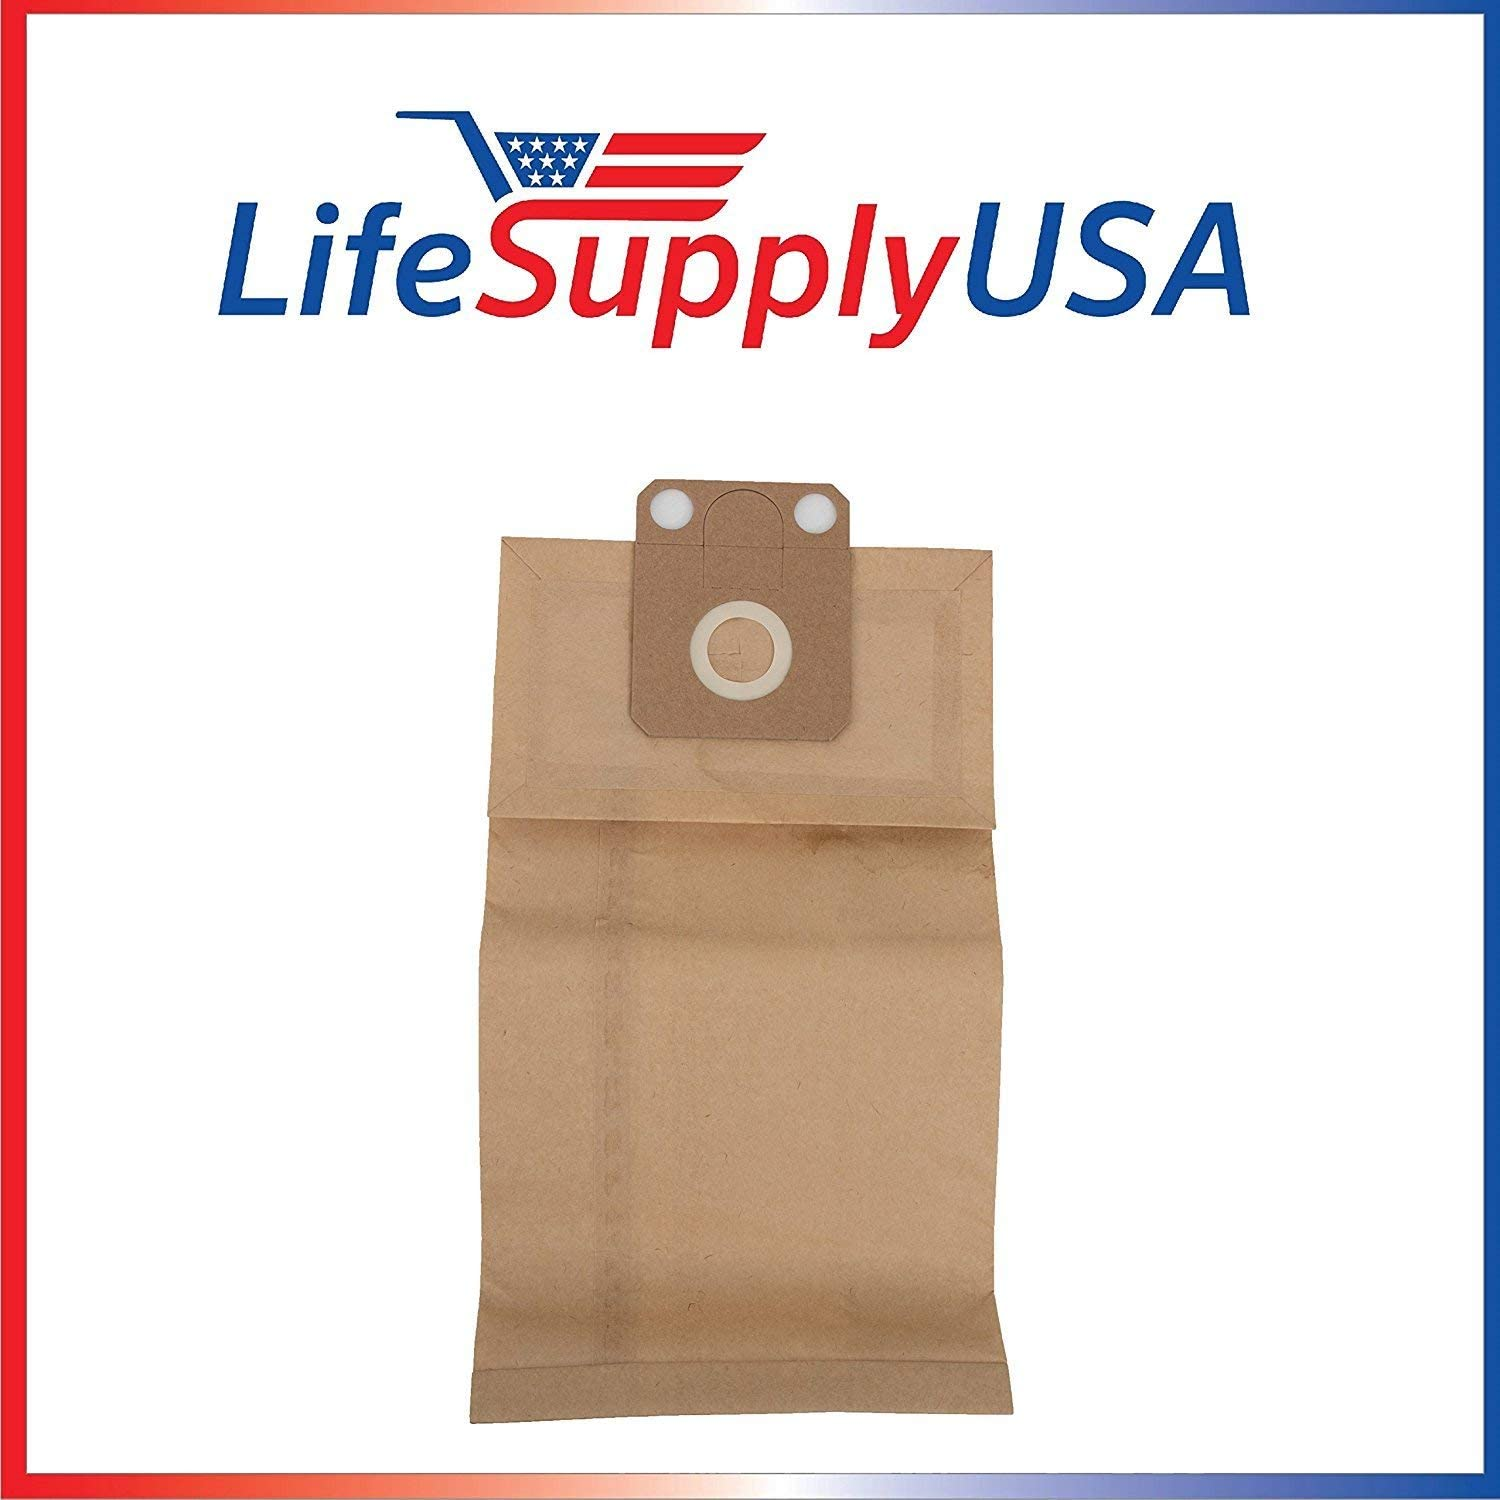 LifeSupplyUSA 5 Packs of 5 (25 count) Replacement Vacuum Paper Bags Compatible with Nilfisk Family CDF Business Commercial CDB Vacs GD1000 Series, Part 82222900